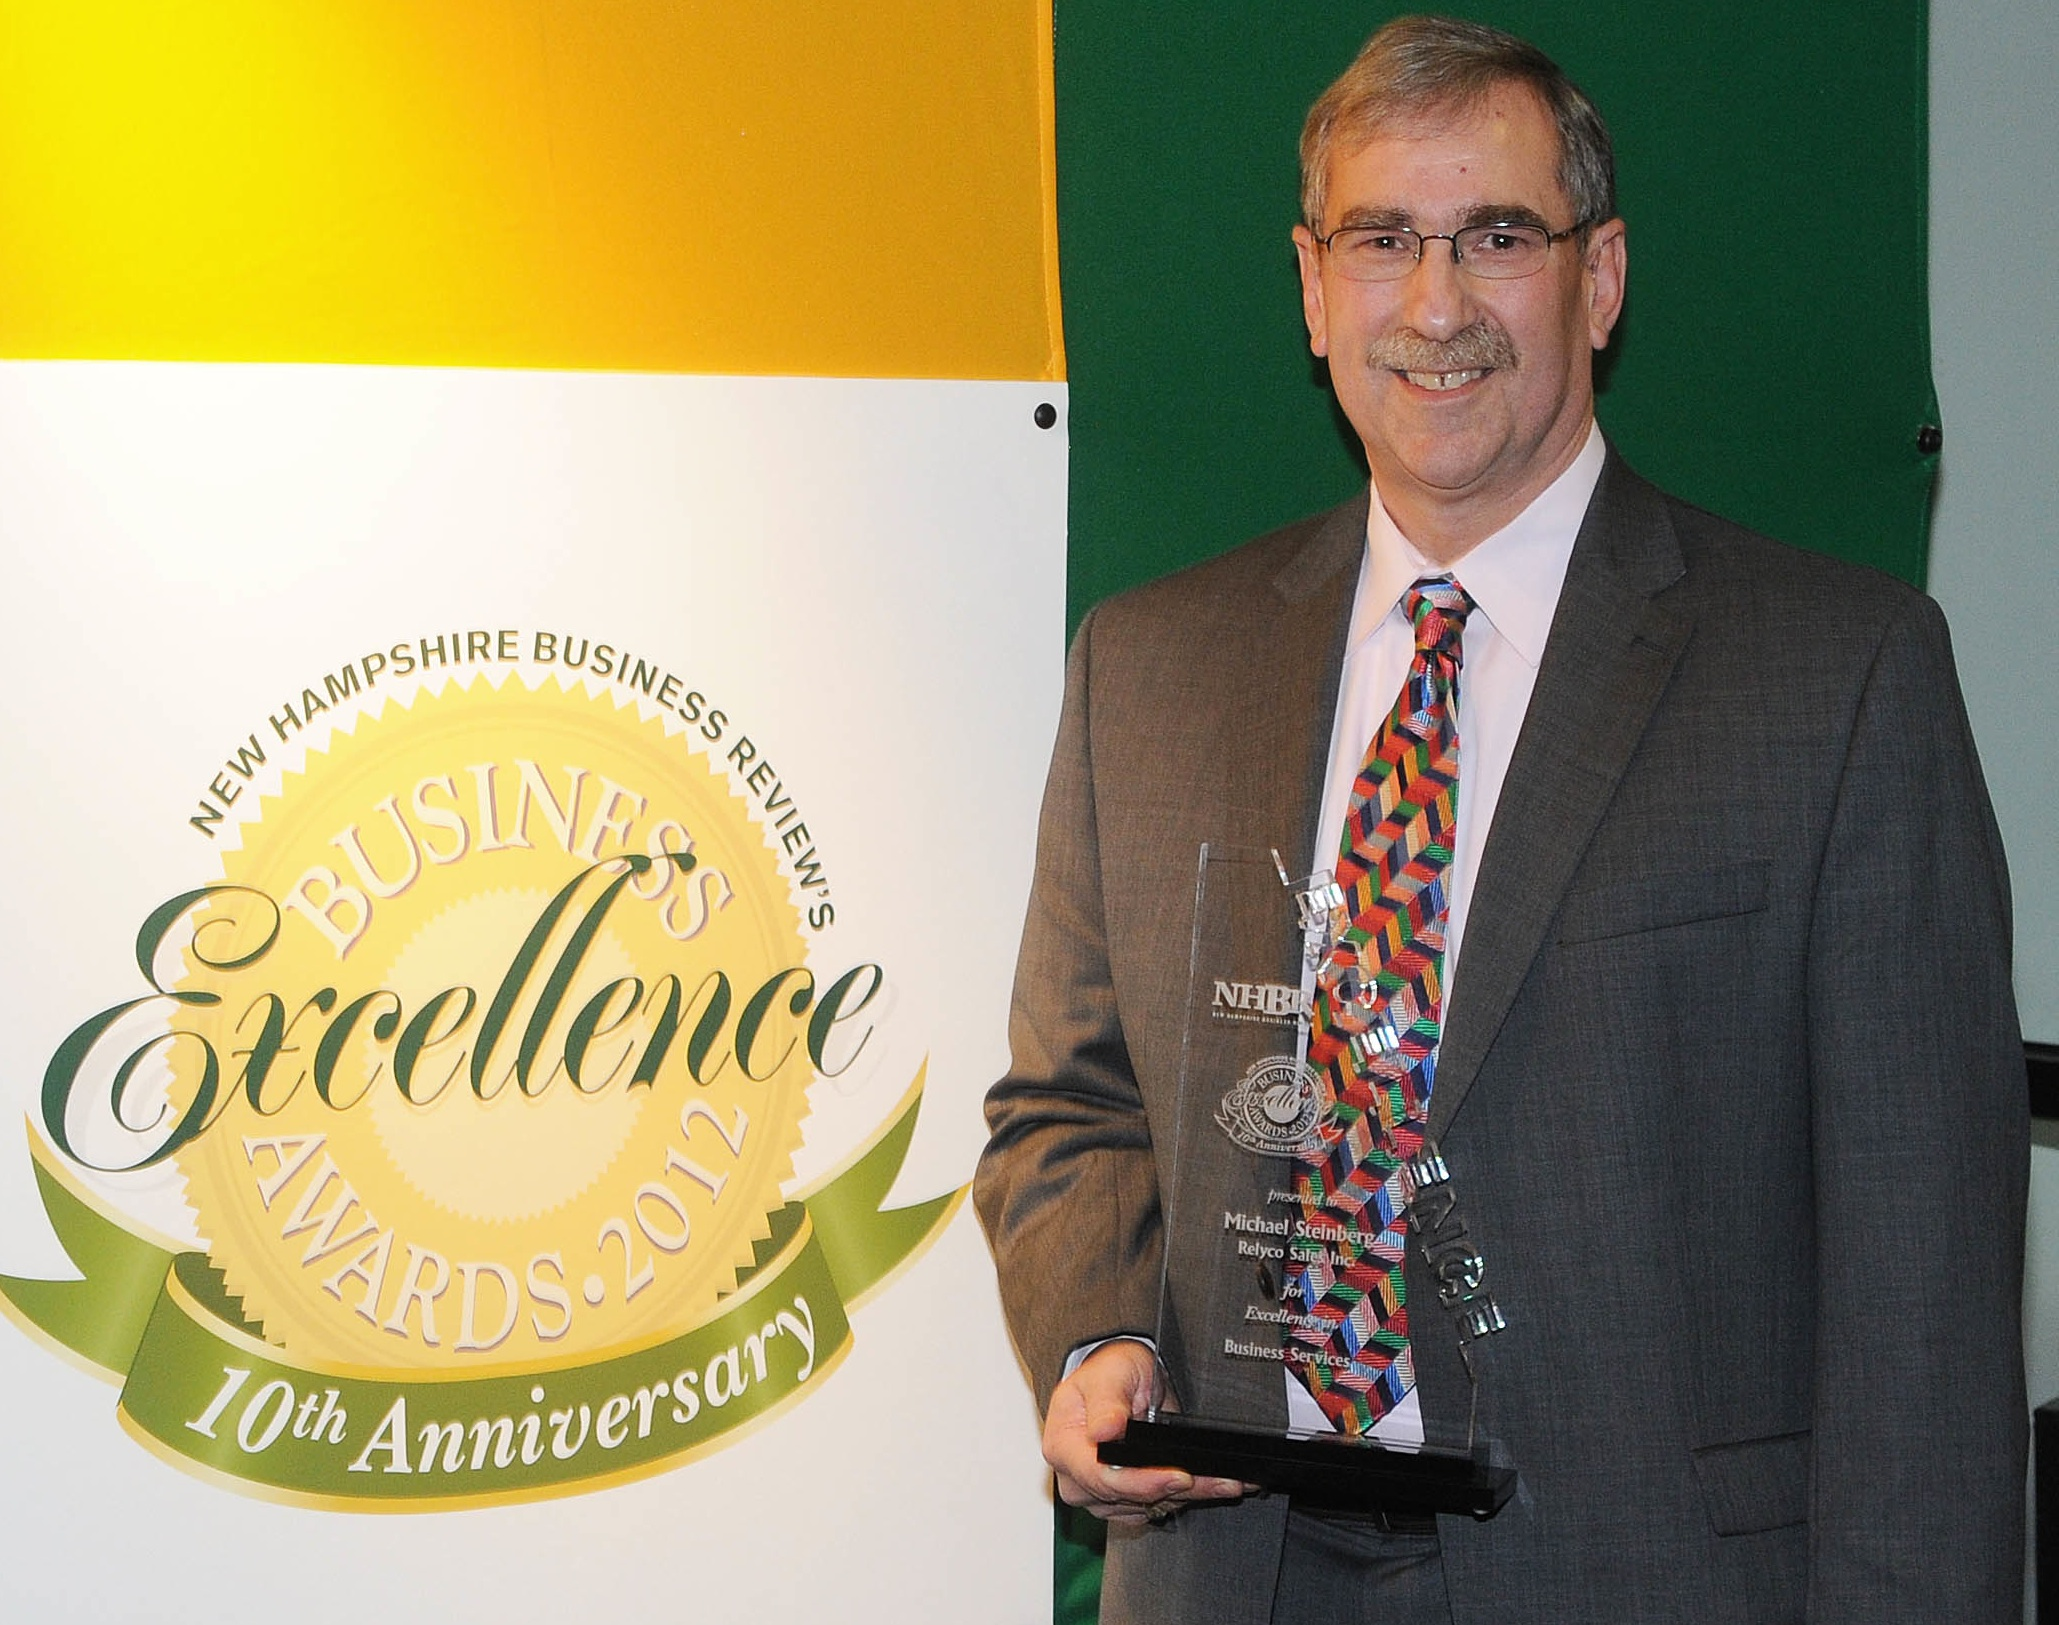 Michael Steinberg, President and CEO of Relyco, Receives New Hampshire Business Excellence Award